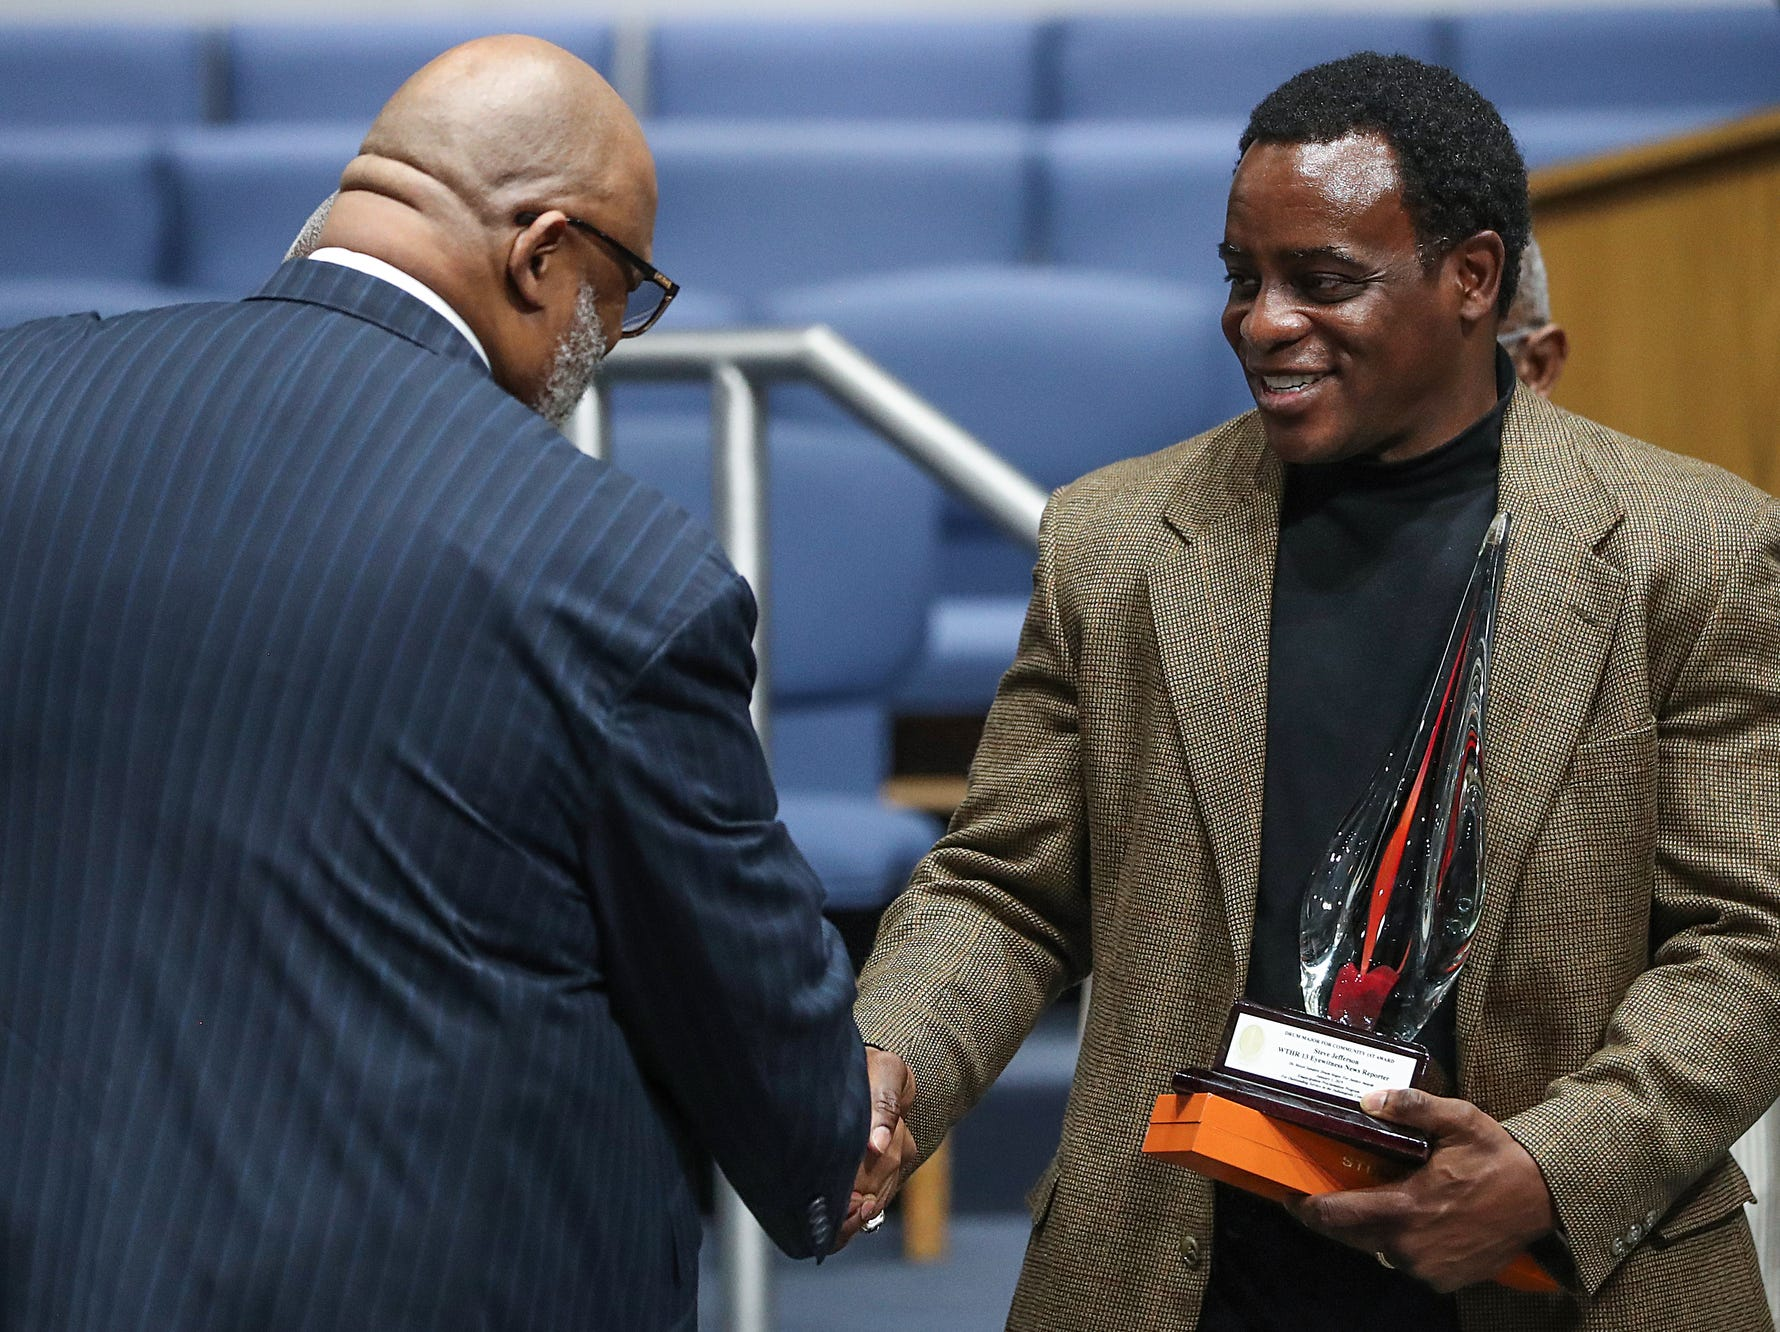 Rev. Dr. Wayne Moore hands the Community 1st Award to Steve Jefferson, during a service celebrating the anniversary of the Emancipation Proclamation at Olivet Missionary Baptist Church in Indianapolis, Tuesday, Jan. 1, 2019. Jefferson is a news reporter for WTHR Channel 13.